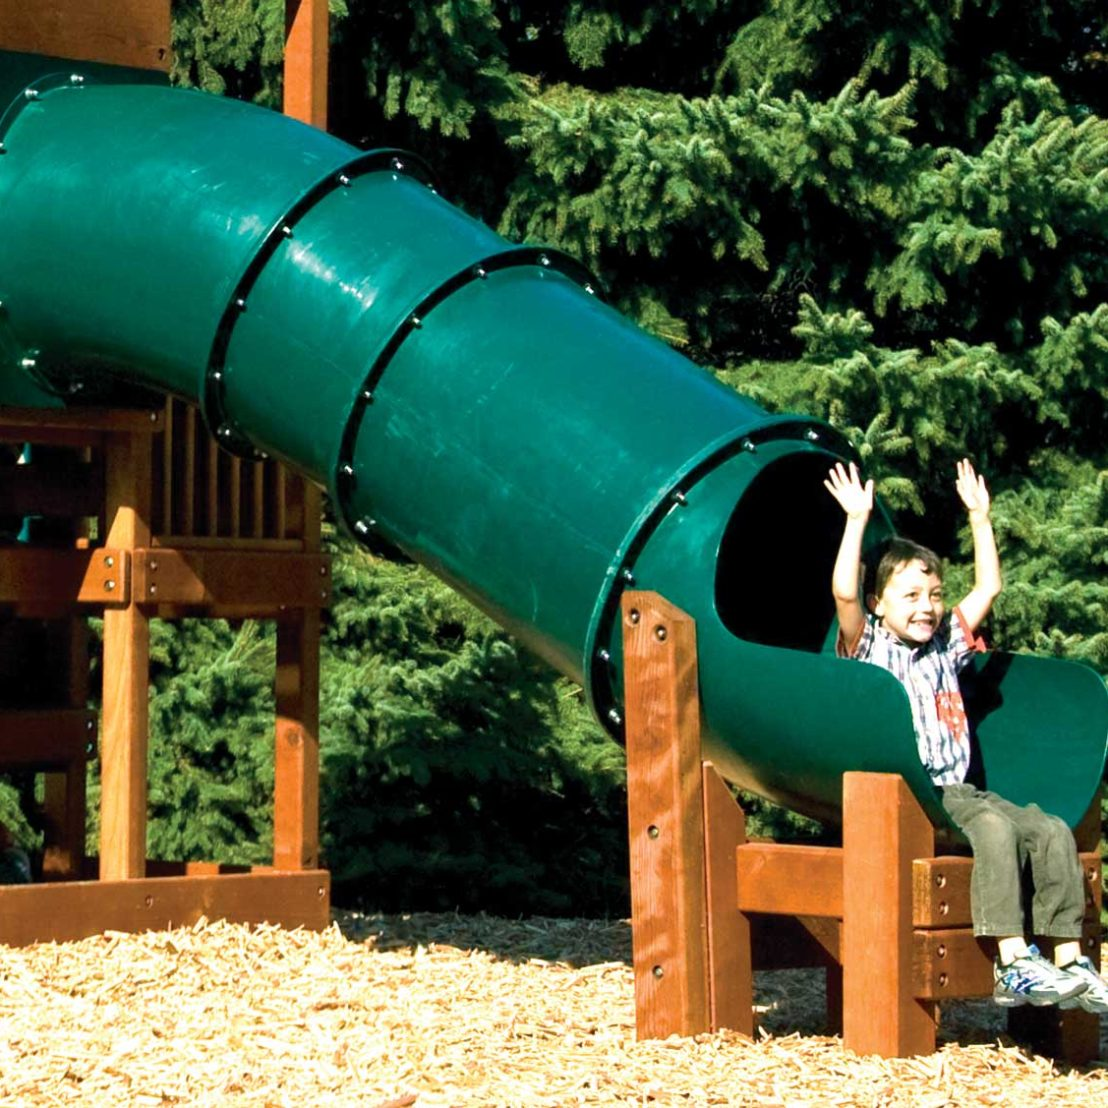 Commercial Green Tube Slide